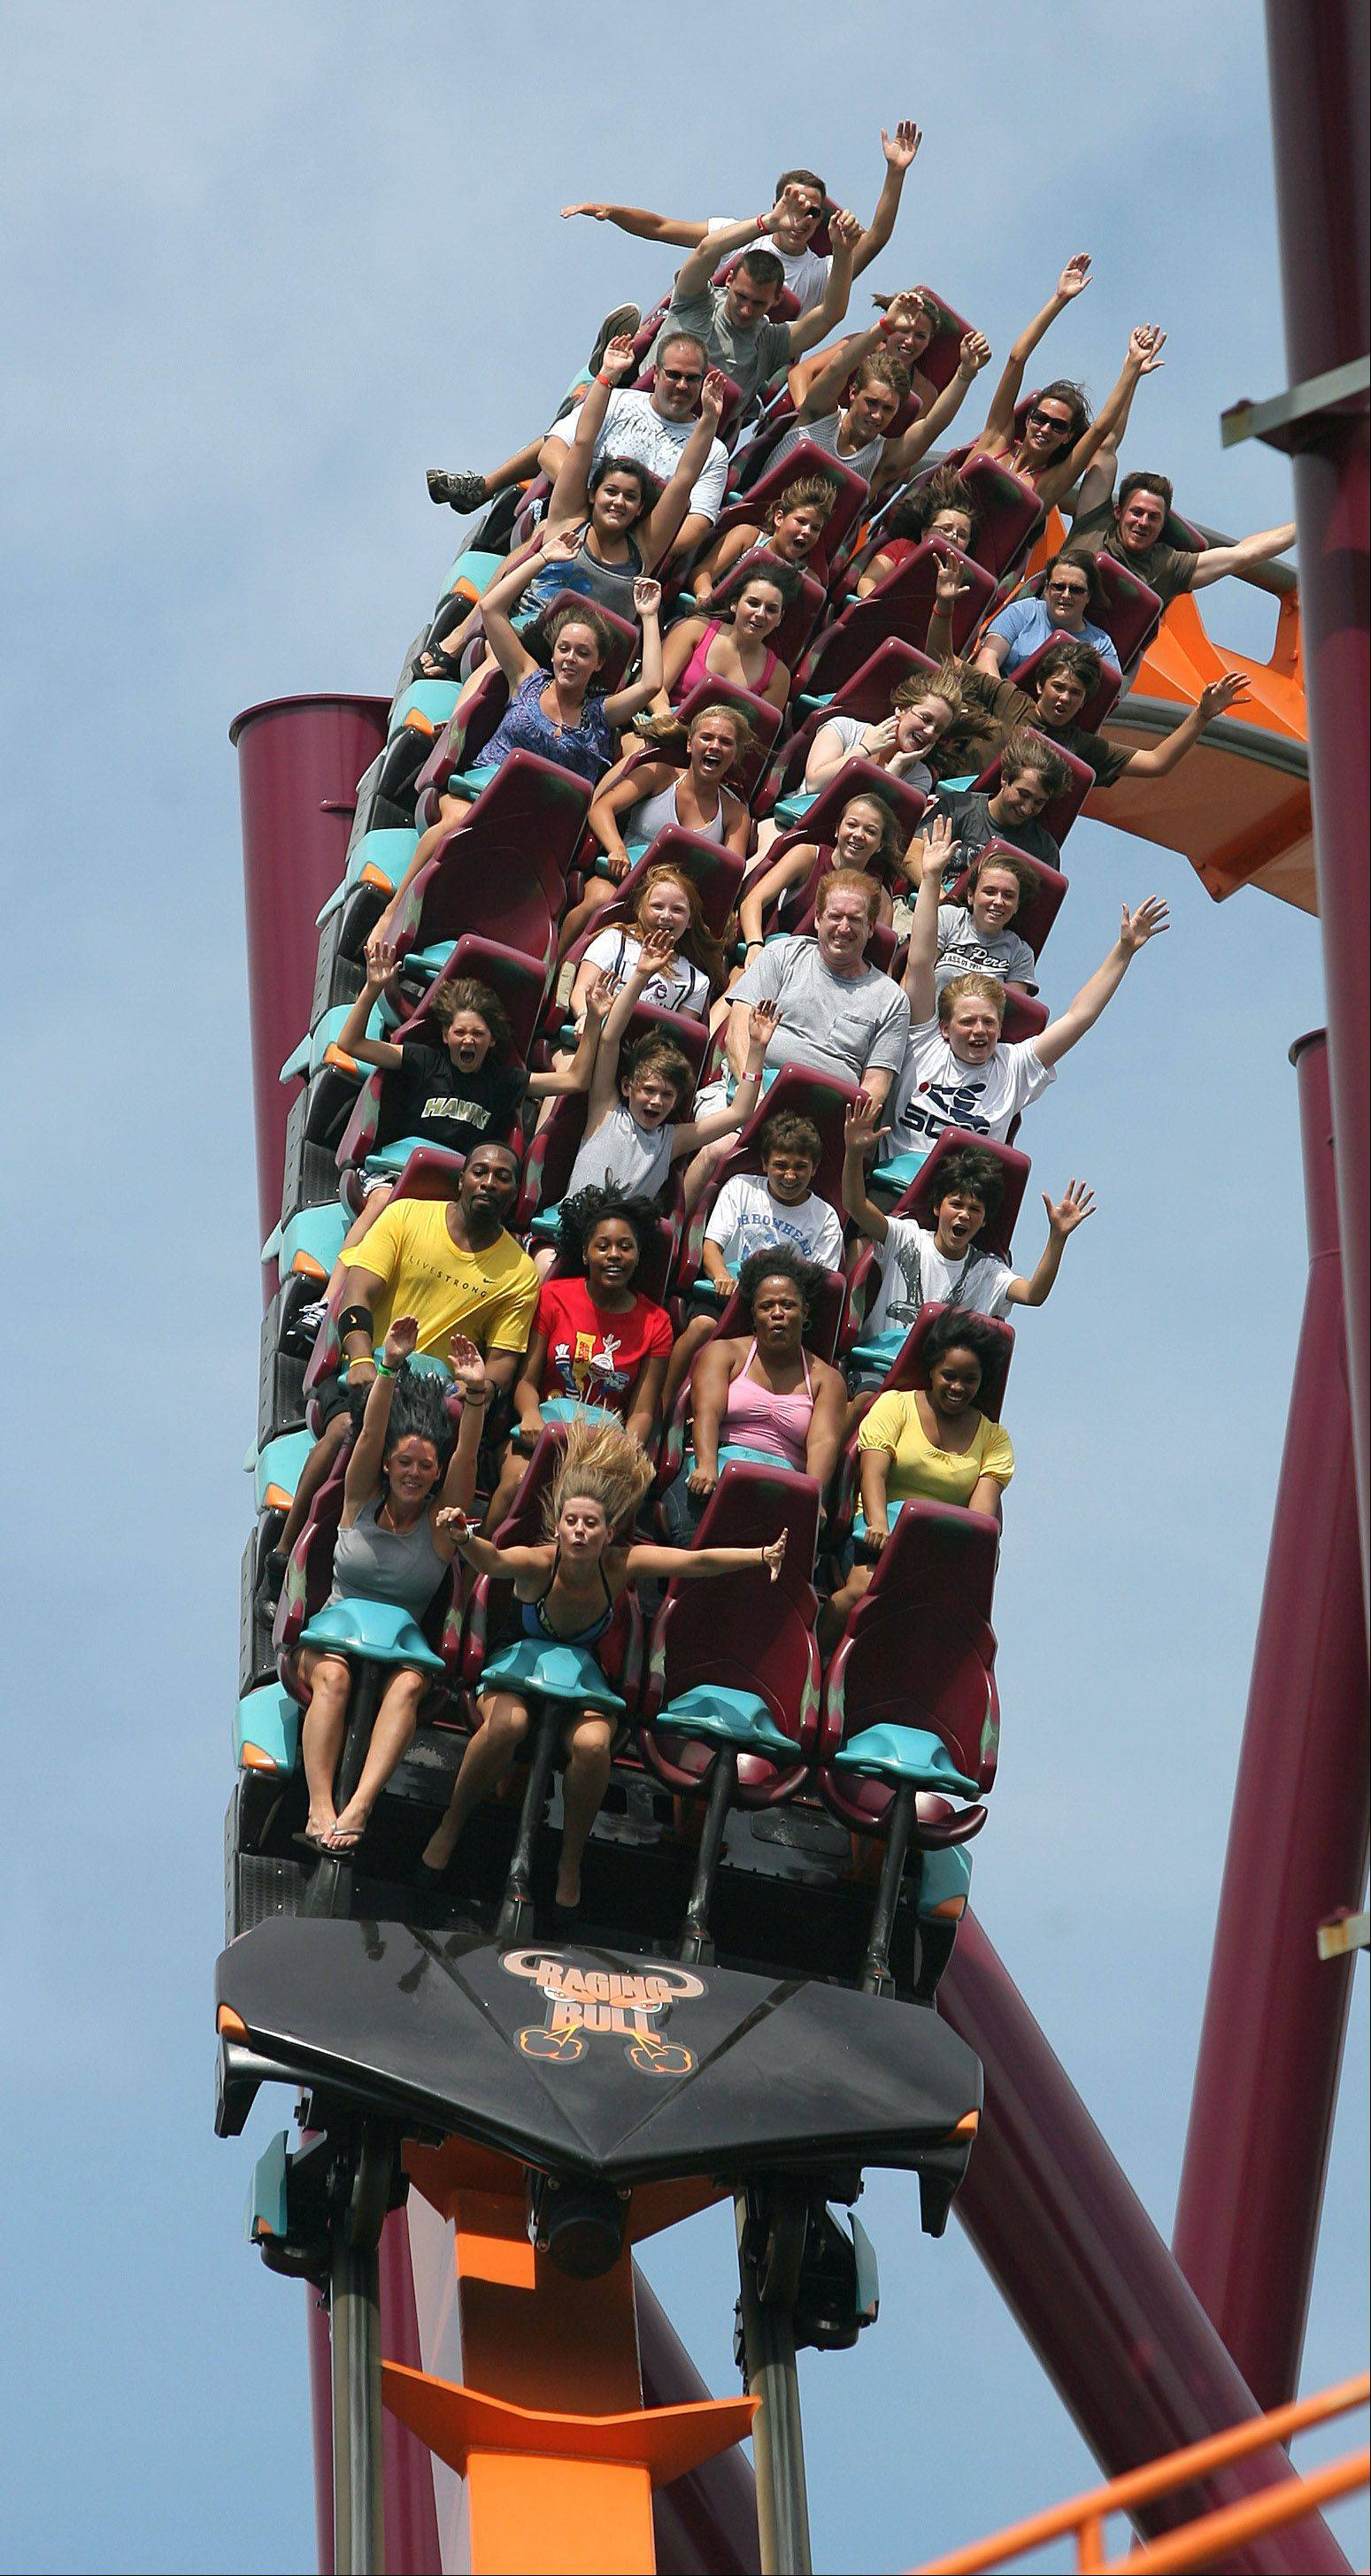 Raging Bull remains a crowd favorite at Six Flags Great America in Gurnee, reopening for the season this weekend.